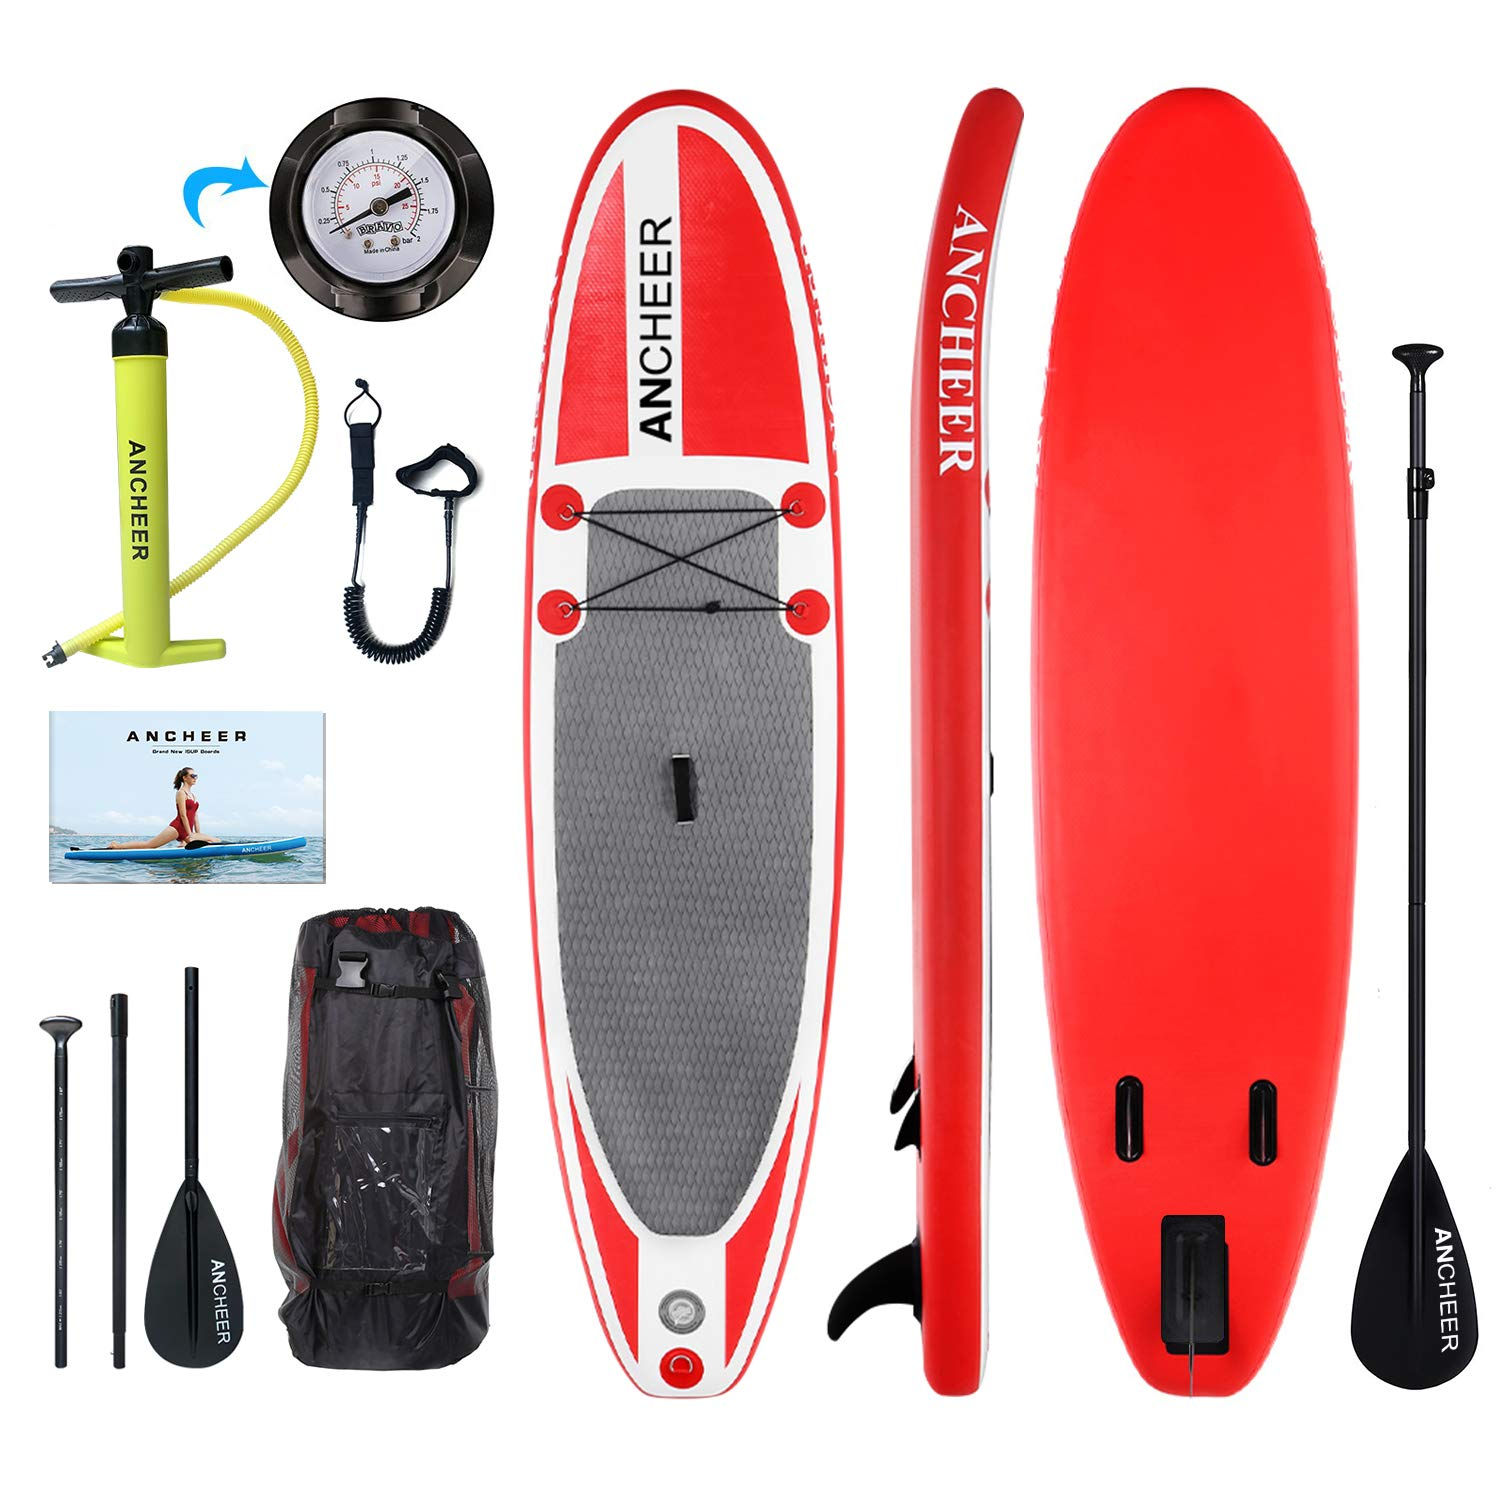 ANCHEER Inflatable Stand Up Paddle Board 10', Non-Slip Deck(6 Inches Thick), iSUP Boards Package w/Adjustable Paddle, Leash, Hand Pump and Backpack, Youth & Adult by ANCHEER